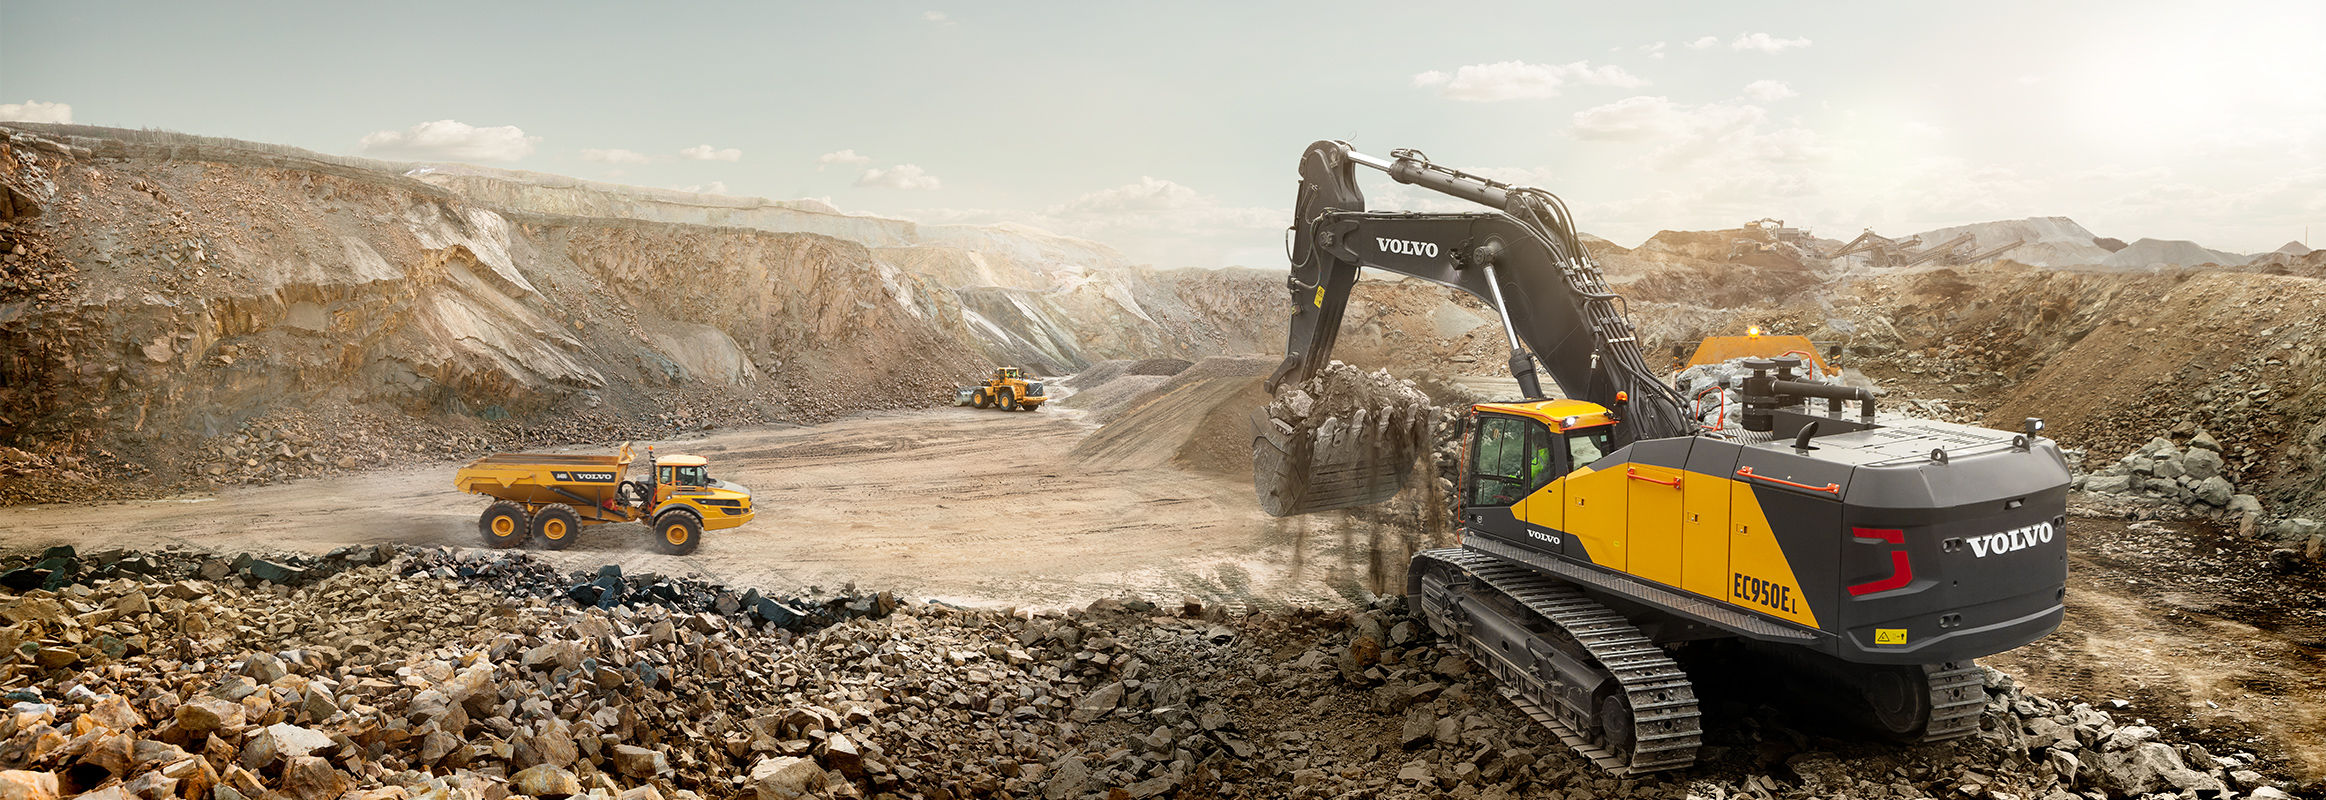 Corporate Information Volvo Construction Equipment Global